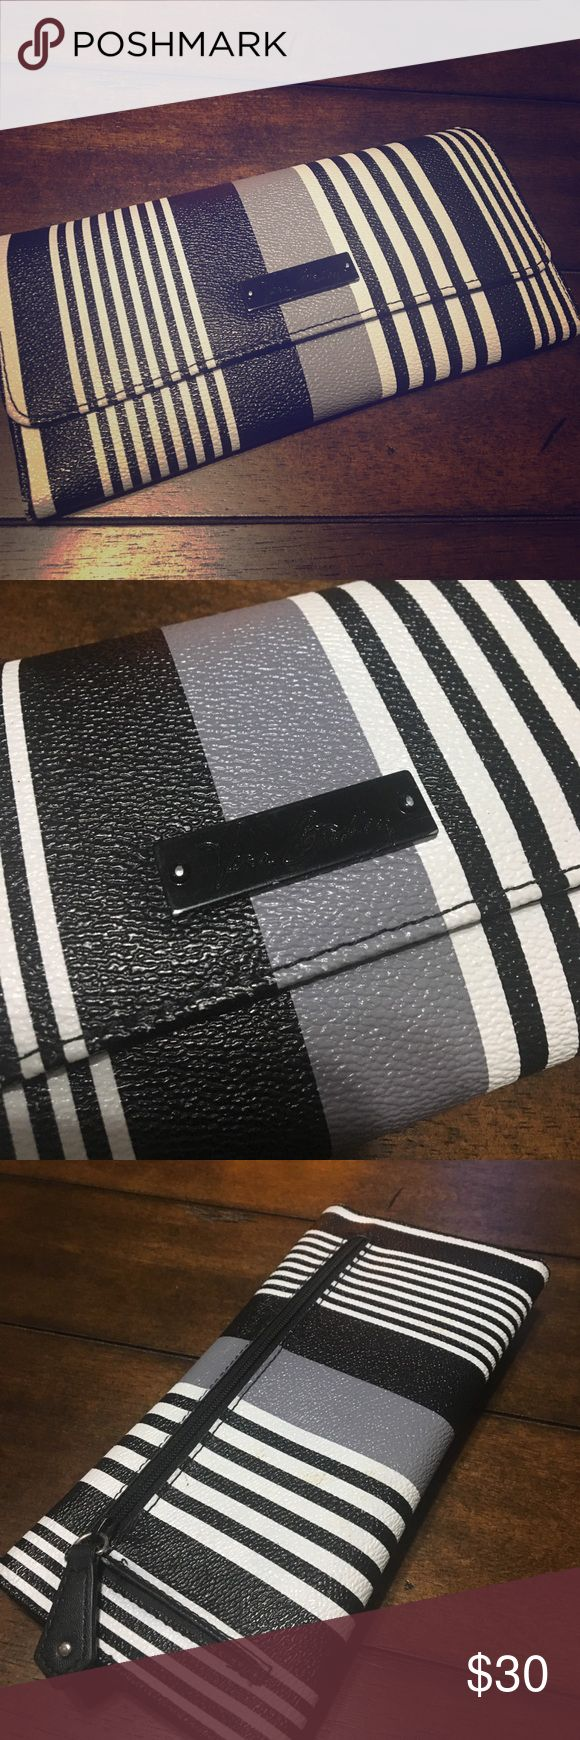 Vera Bradley Wallet Beautiful black/white/gray stripe Vera Bradley wallet. Magnetic closure. One external zipper pocket. Inside there are 11 card slots, 2 ID windows, 3 full length pockets. Excellent pre loved condition. Vera Bradley Bags Wallets